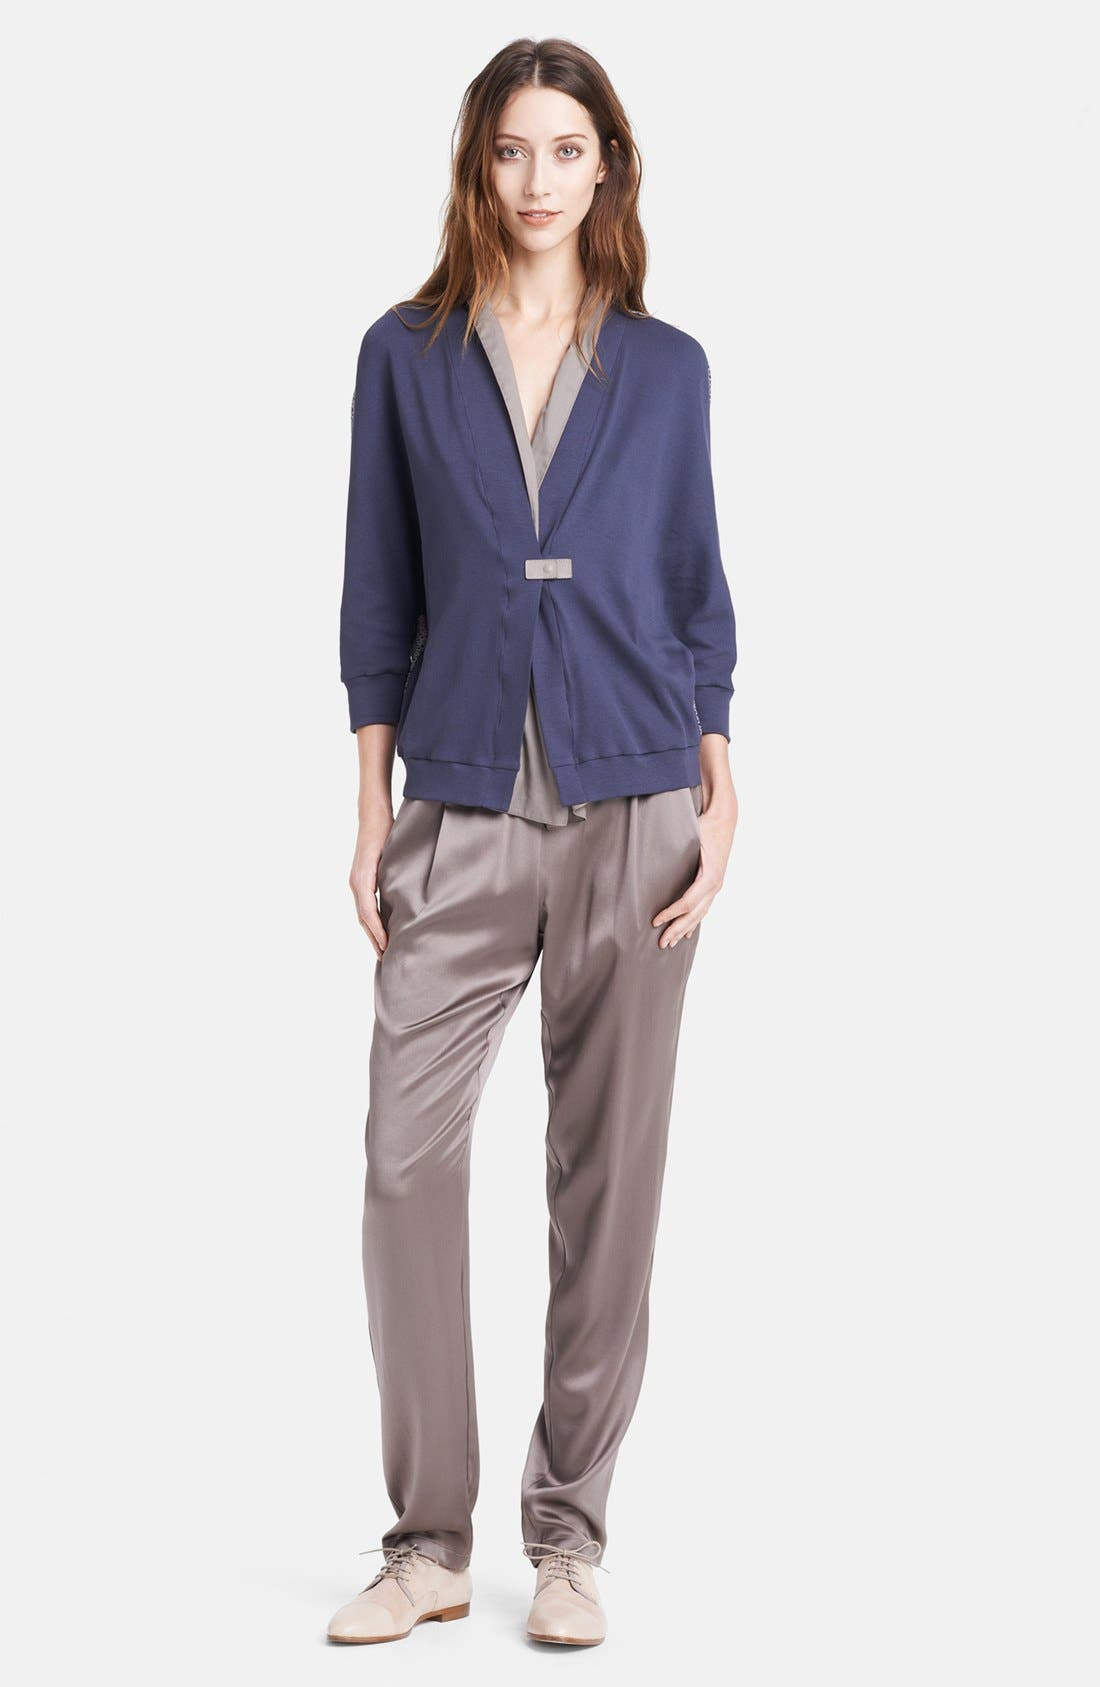 Alternate Image 1 Selected - Fabiana Filippi Cardigan & Pants